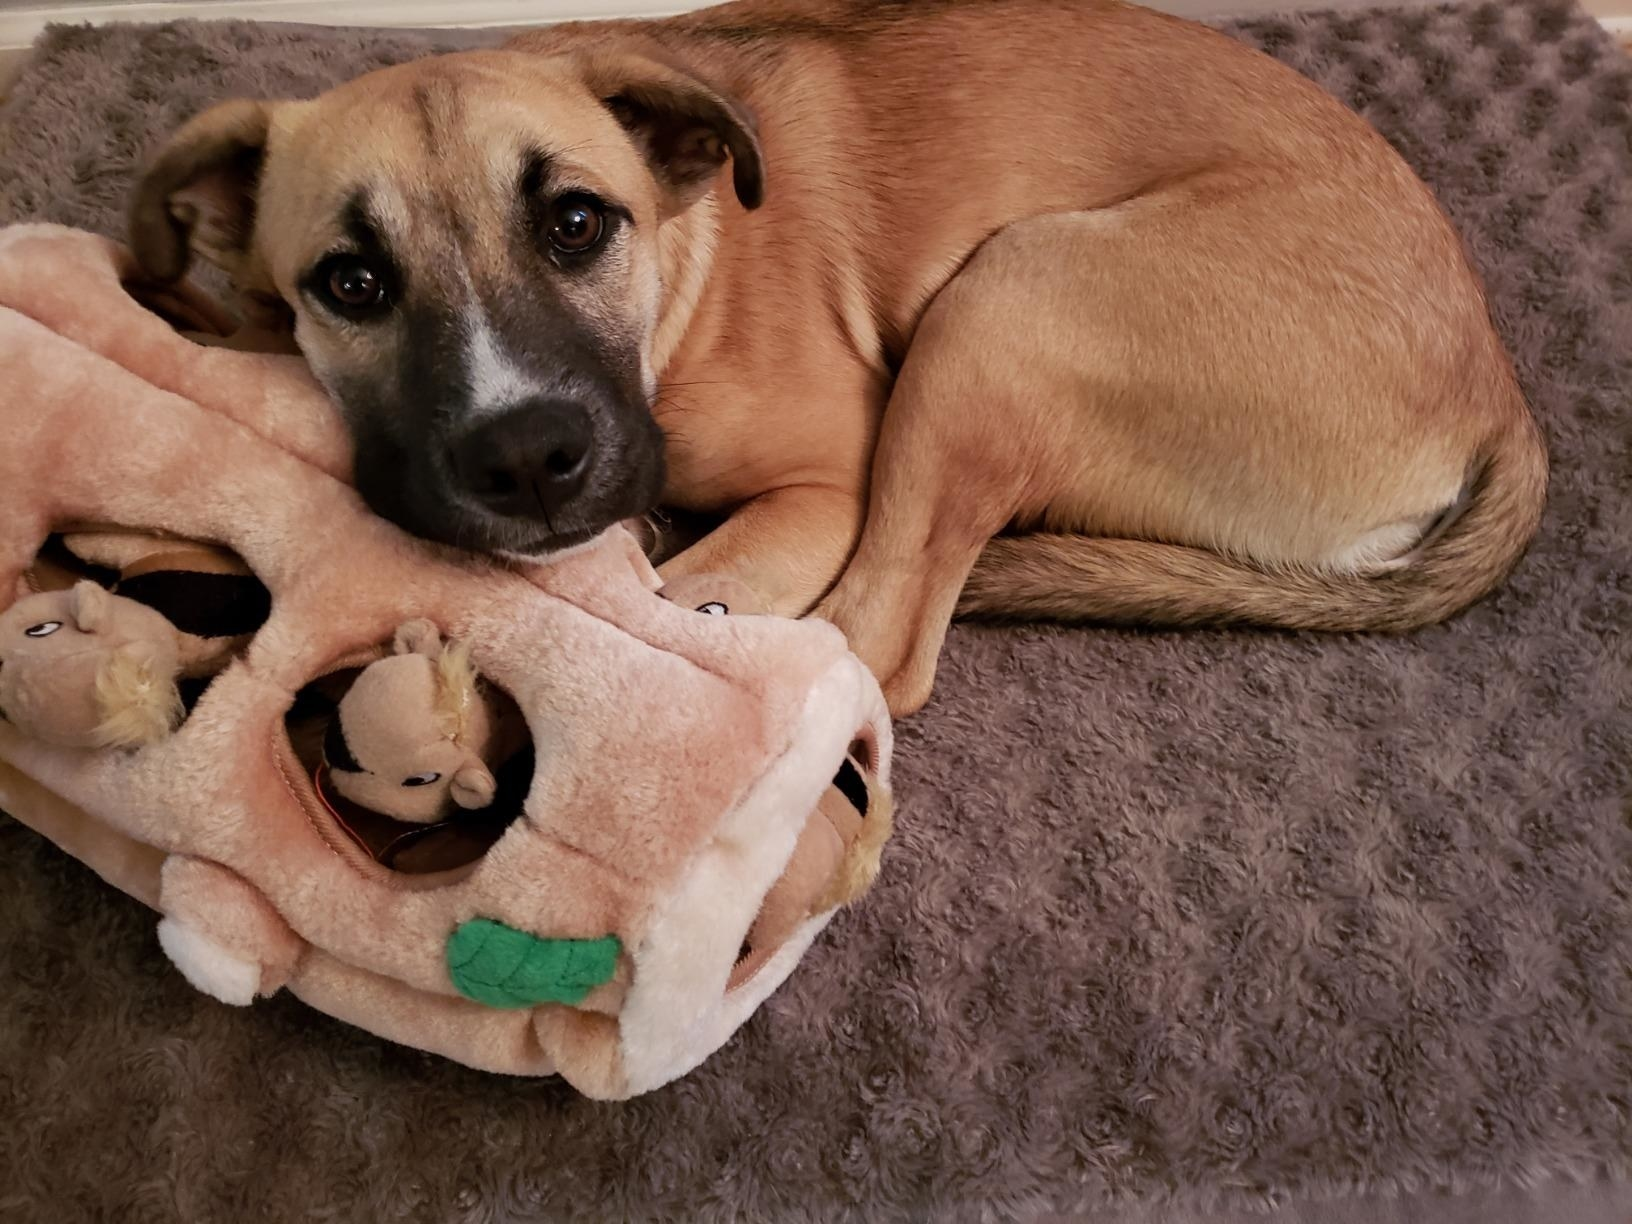 reviewer image of their dog laying down next to their hide a squirrel plush toy